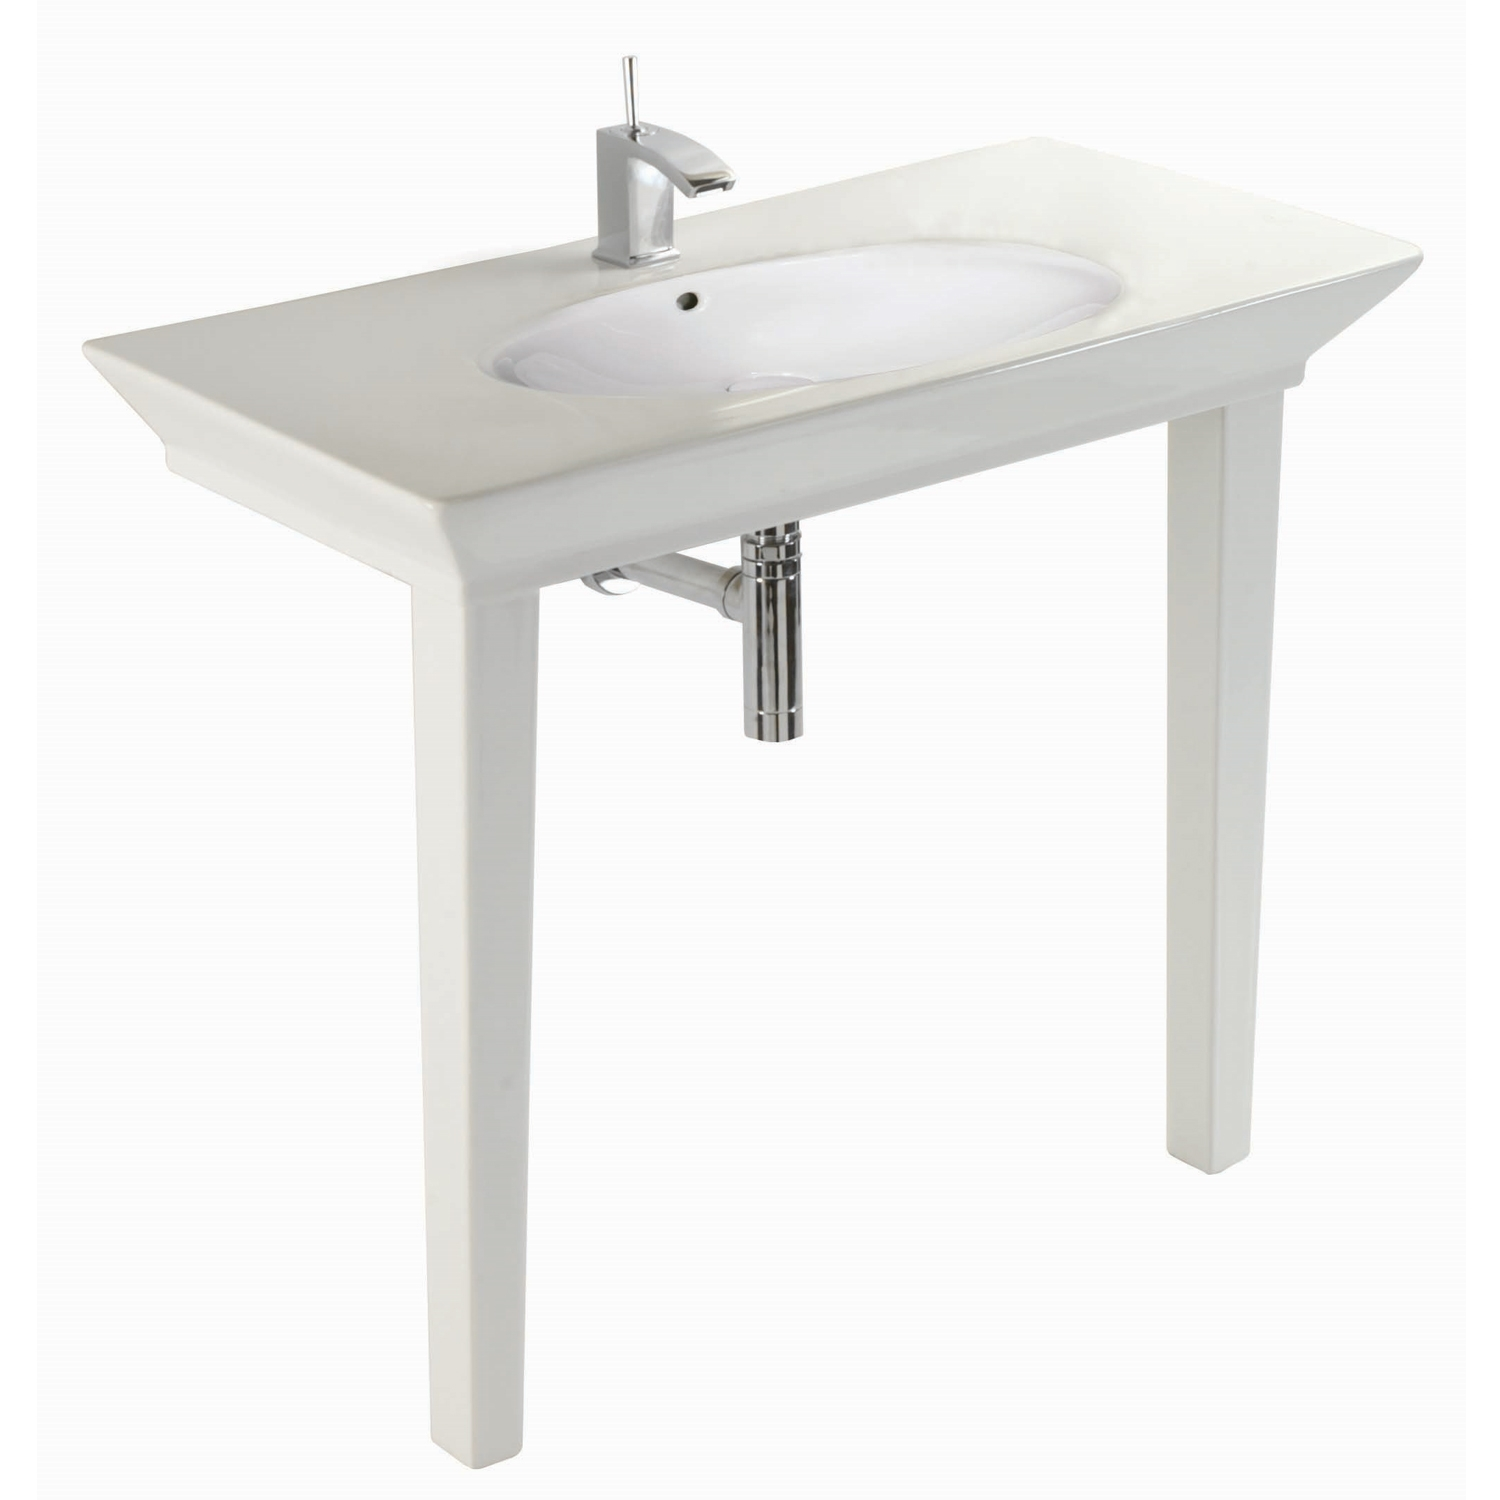 RAK Opulence Round Basin 1000mm Wide without Waste - 1 Tap Hole-1